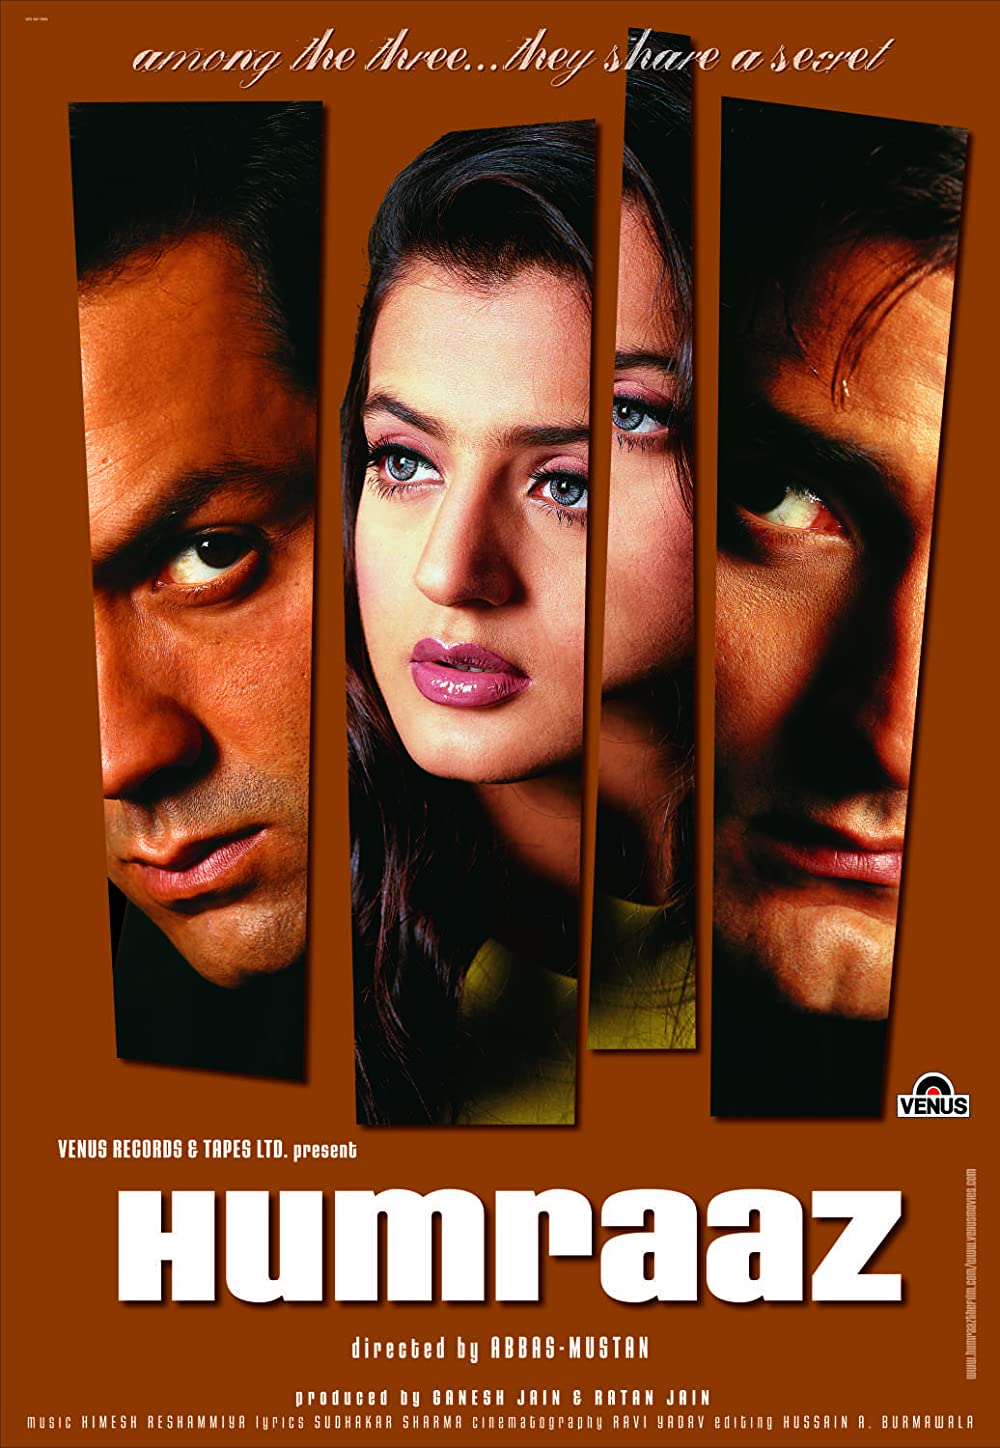 Humraaz 2002 Hindi 510MB AMZN HDRip ESub Download